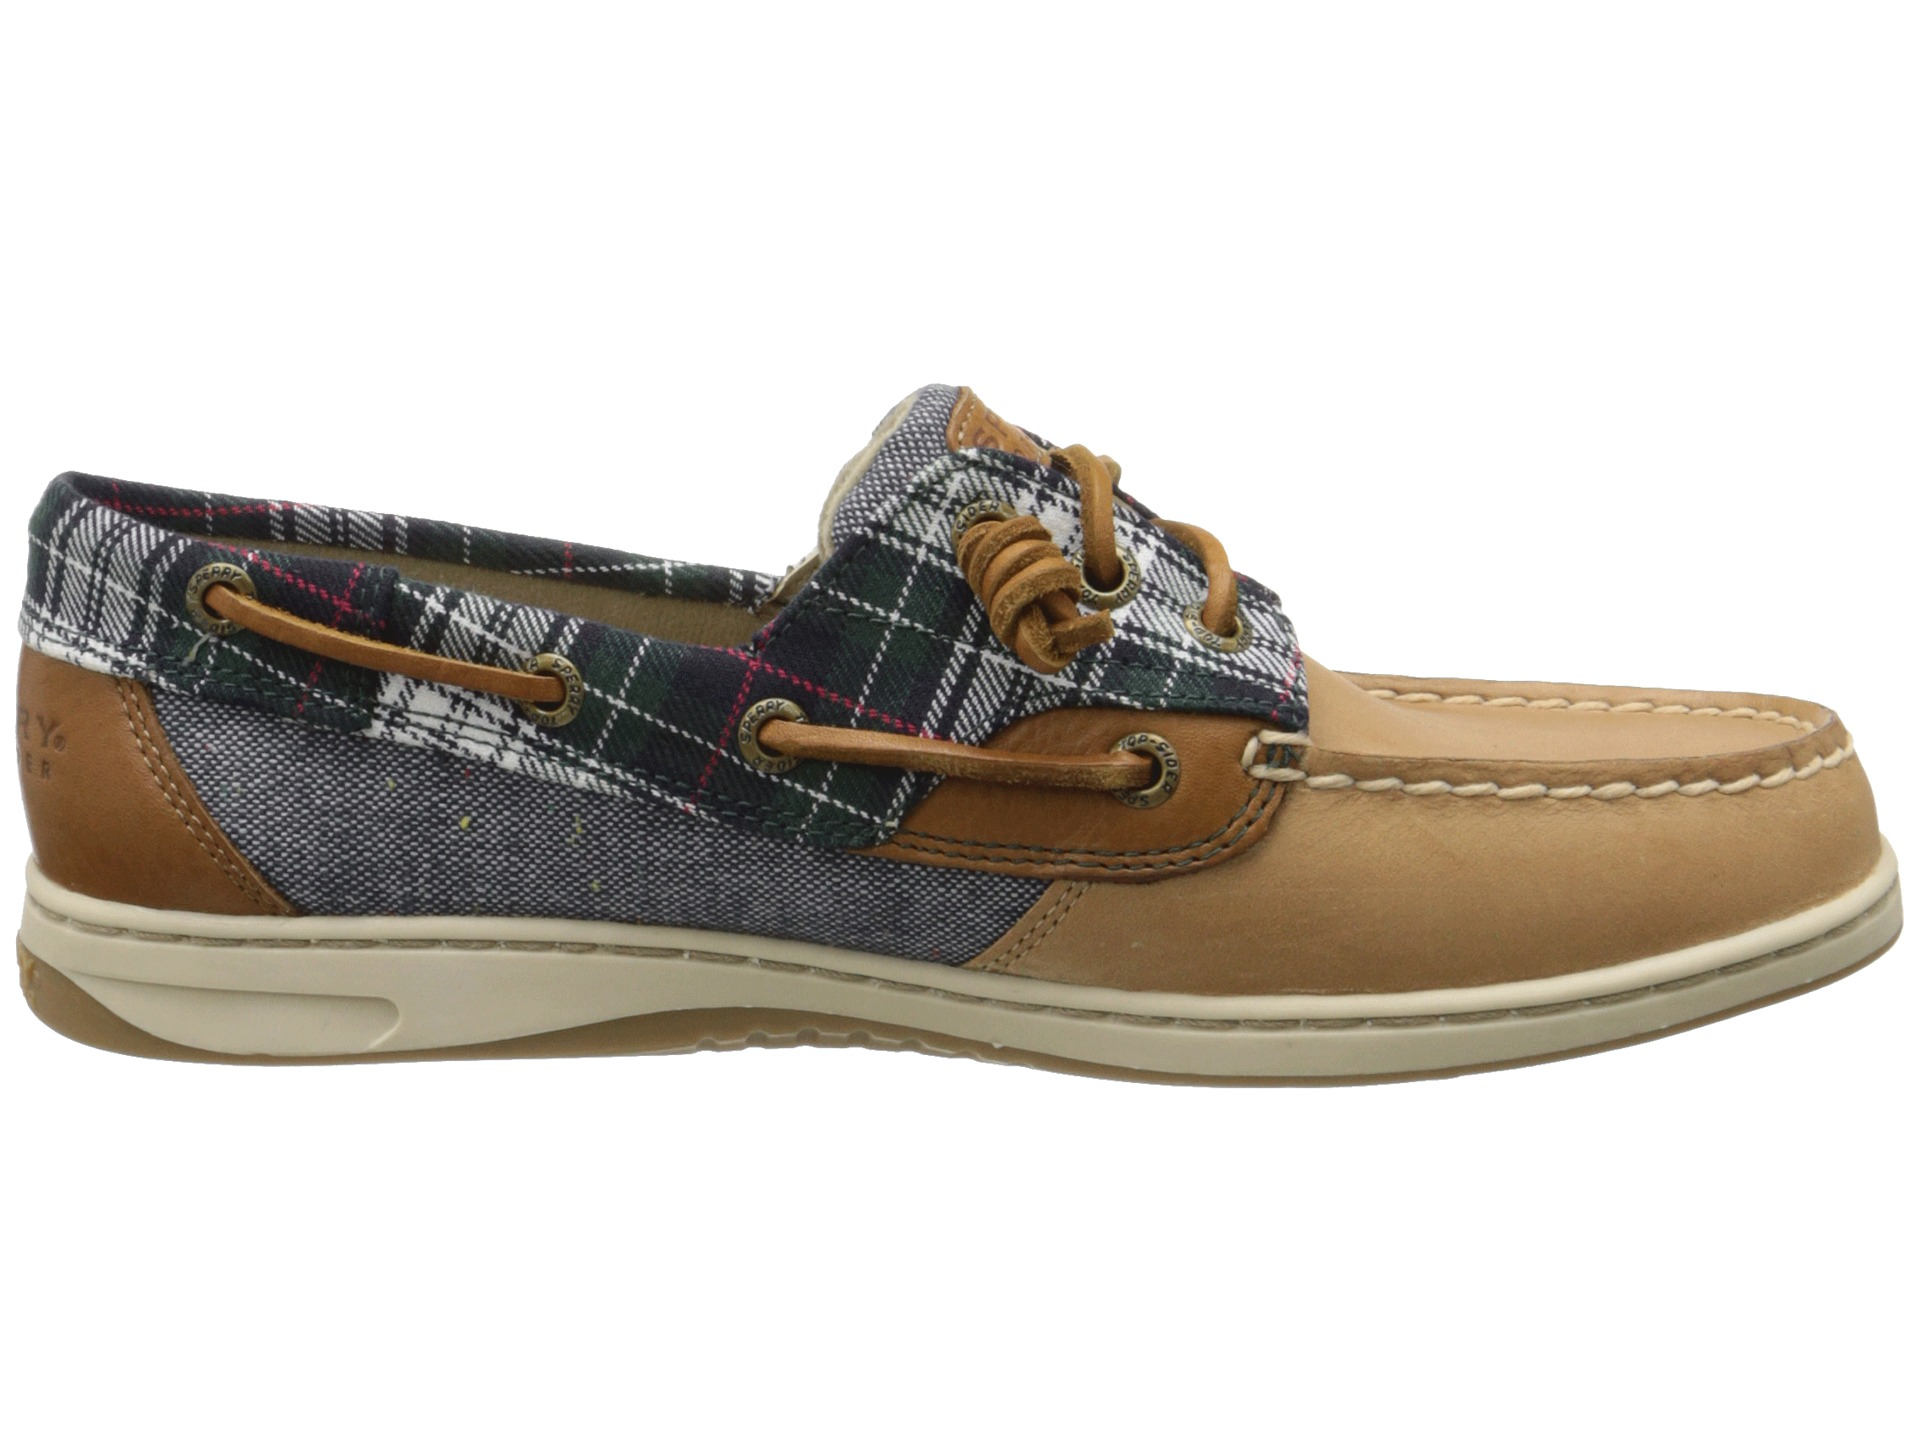 Mens Sperry Dress Shoes Images Buying Online